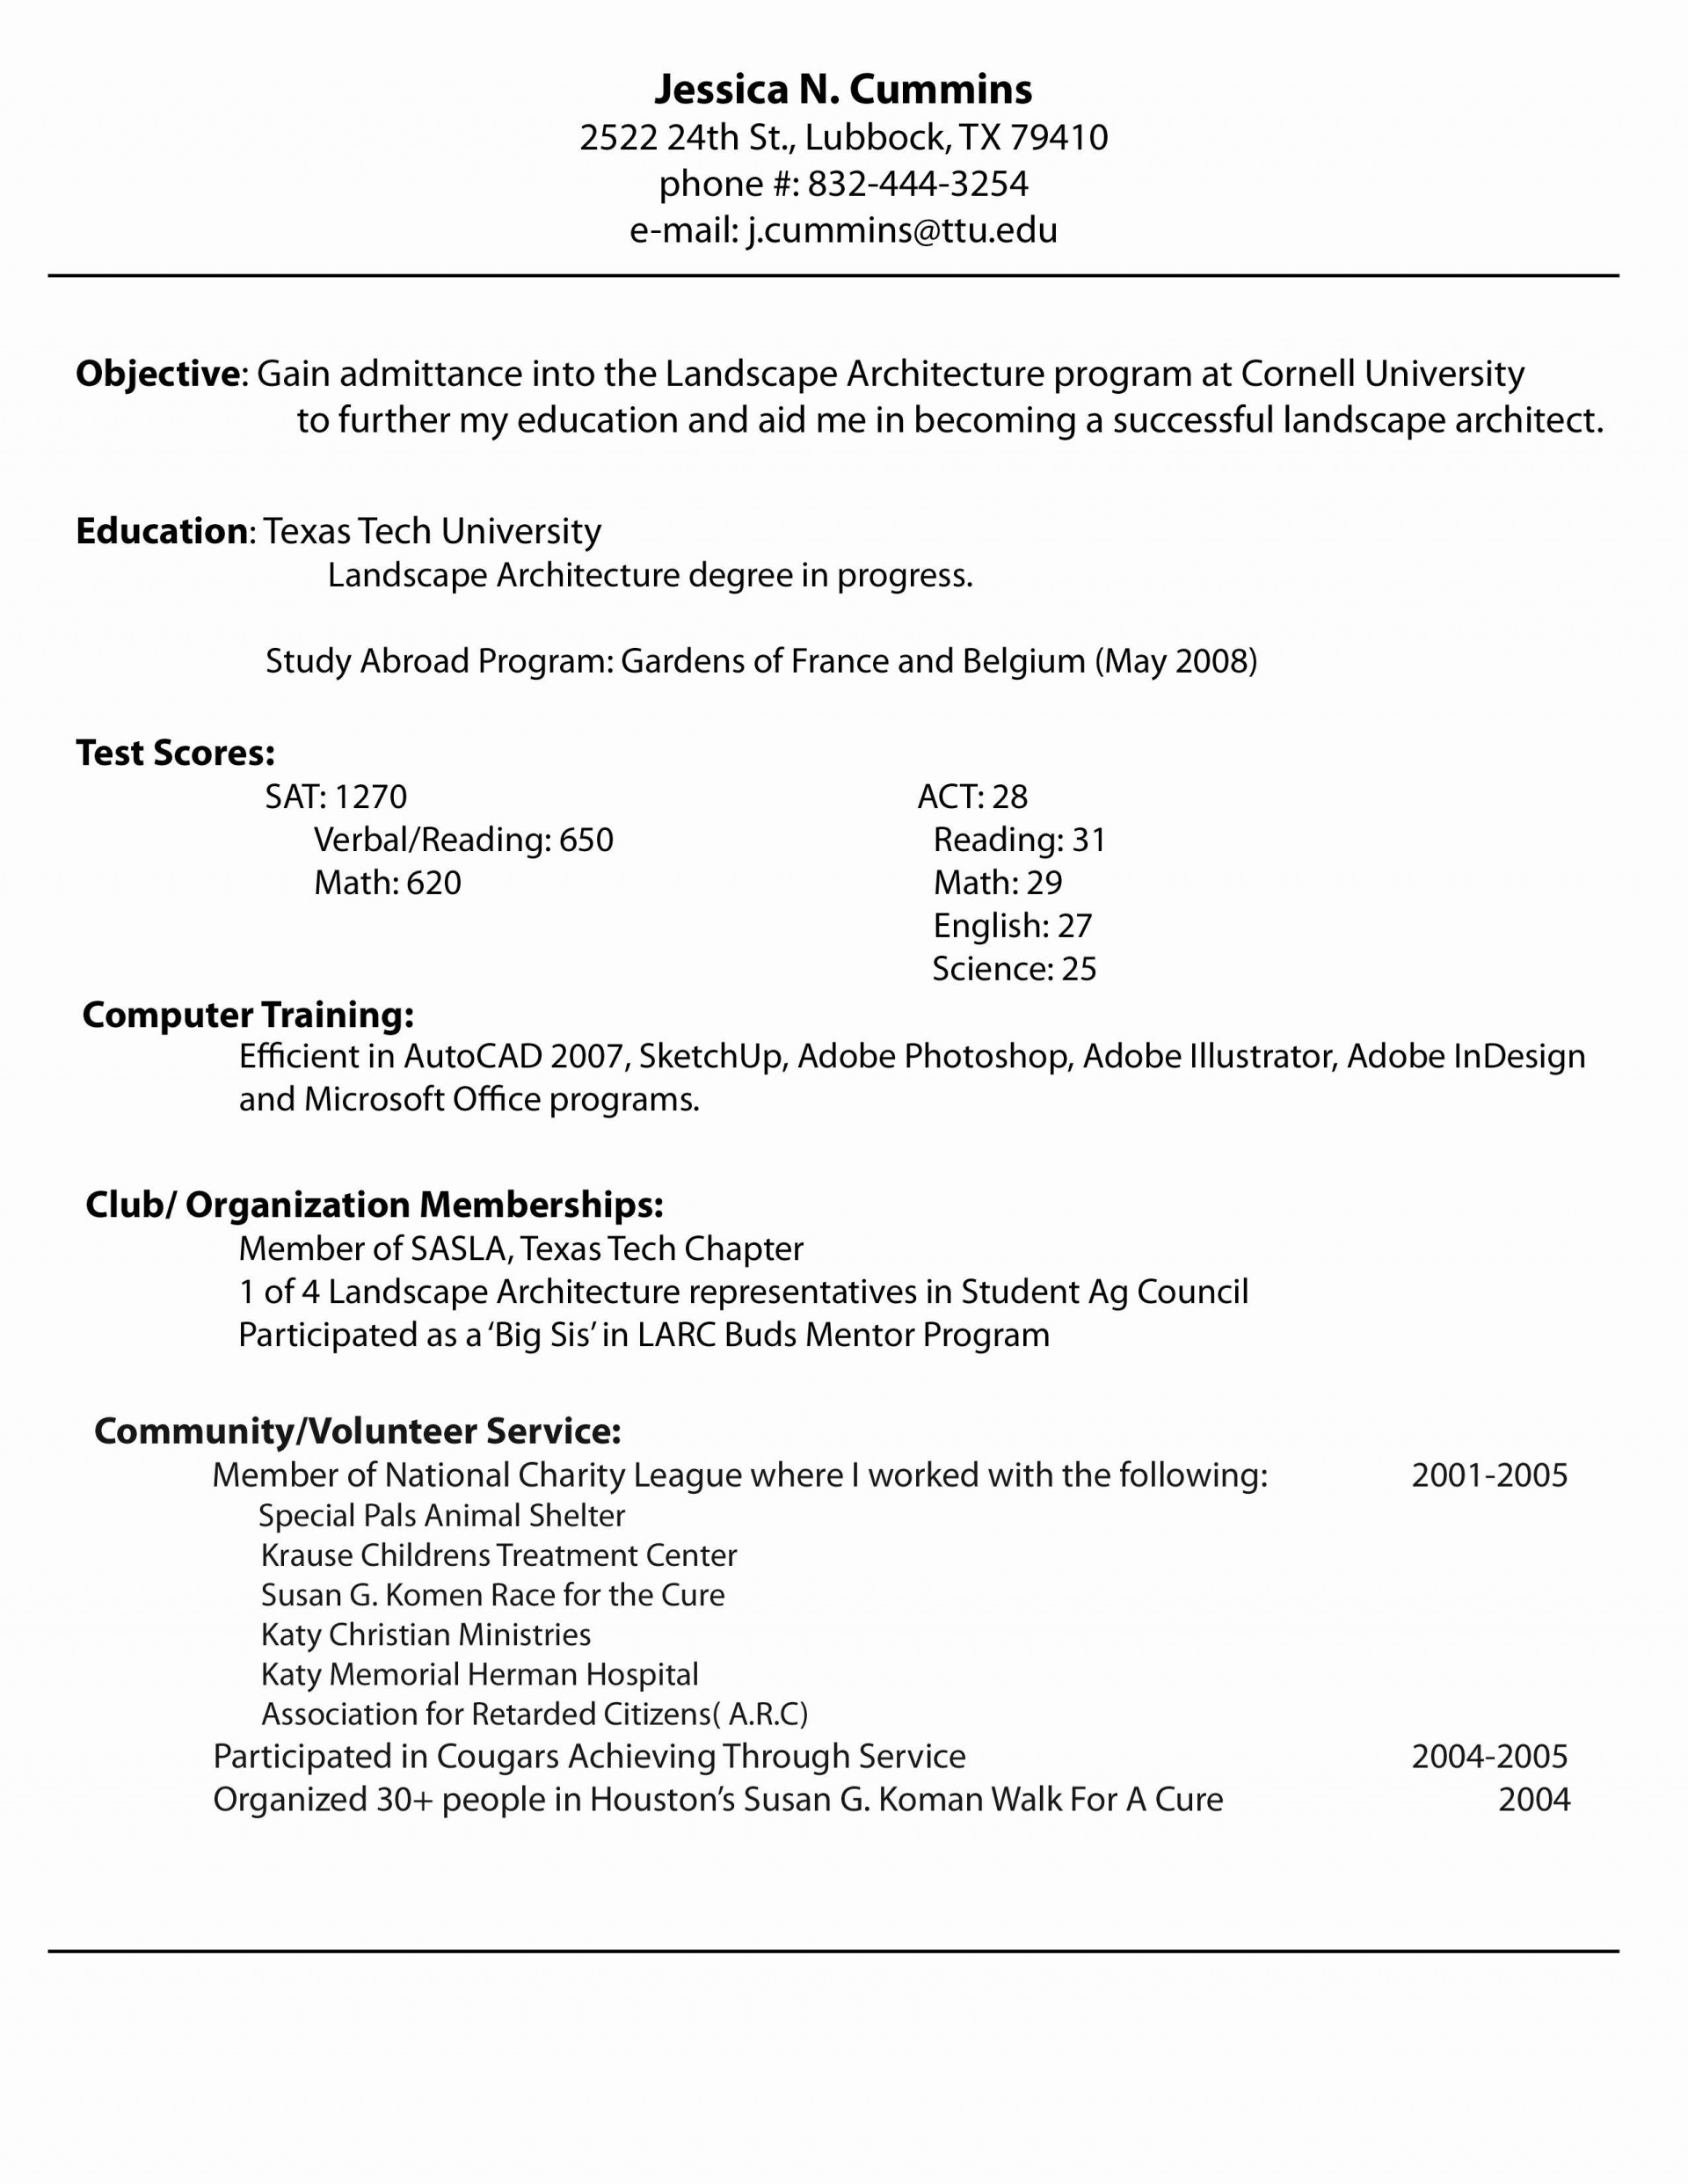 015 Quick Resume Builder Free New Autism Cover Letters Benjamin Franklin Chess Essay Cornell Of Stupendous Mba Examples Engineering Essays That Worked 1920